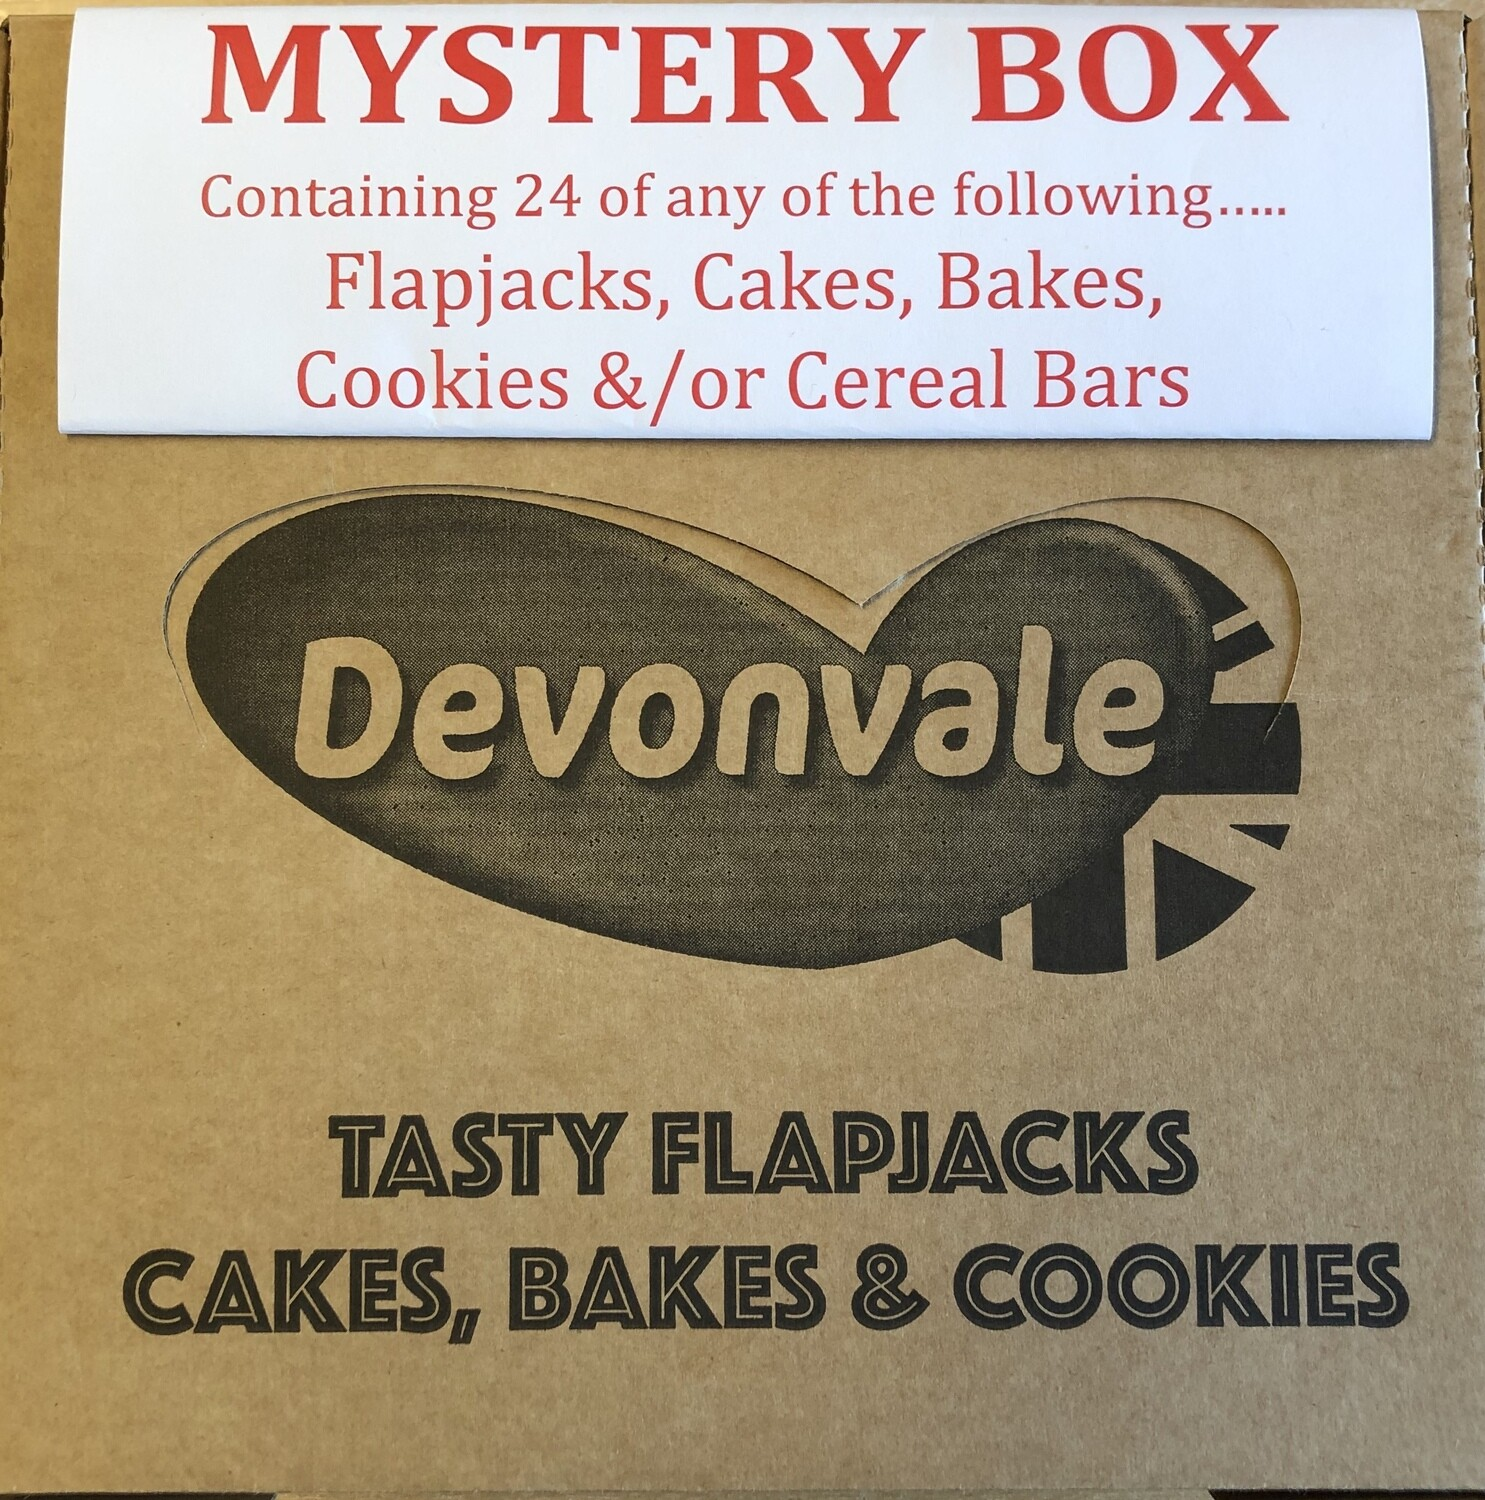 NEW! Mystery Box of Devonvale Flapjacks, Cakes, Bakes, Cookies &/or Cereal Bars